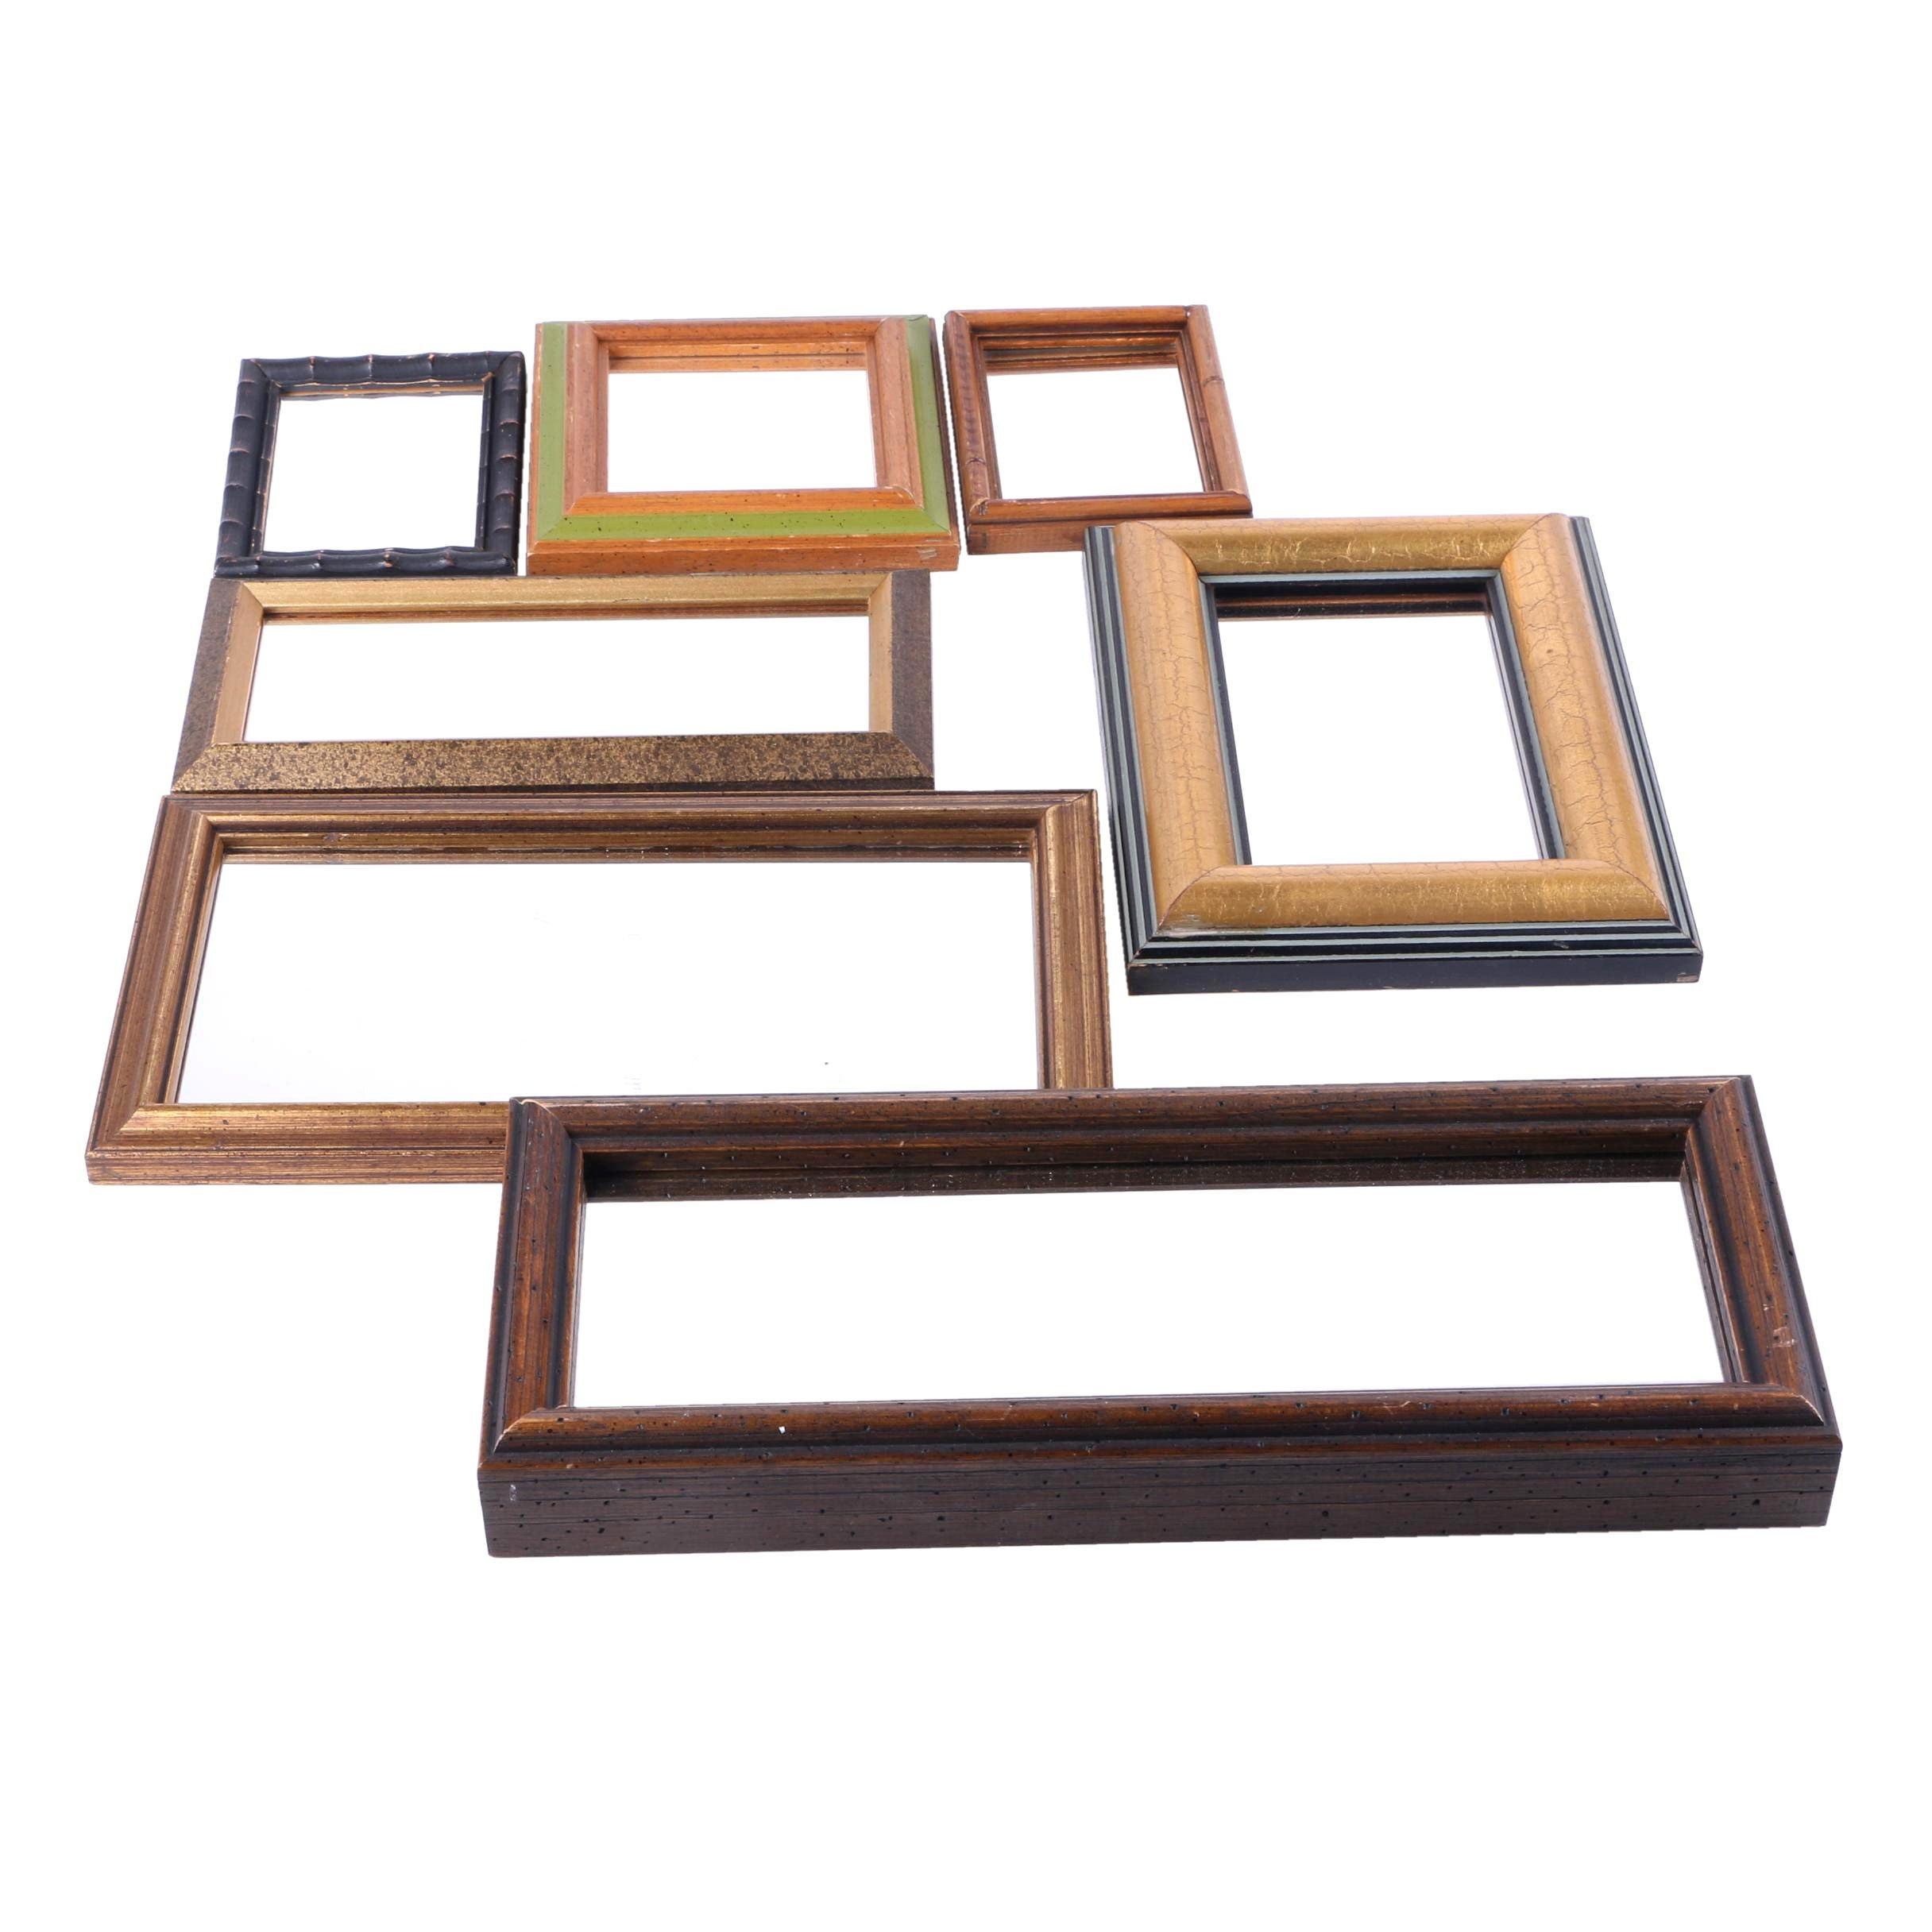 Assorted Wood Framed Wall Mirrors